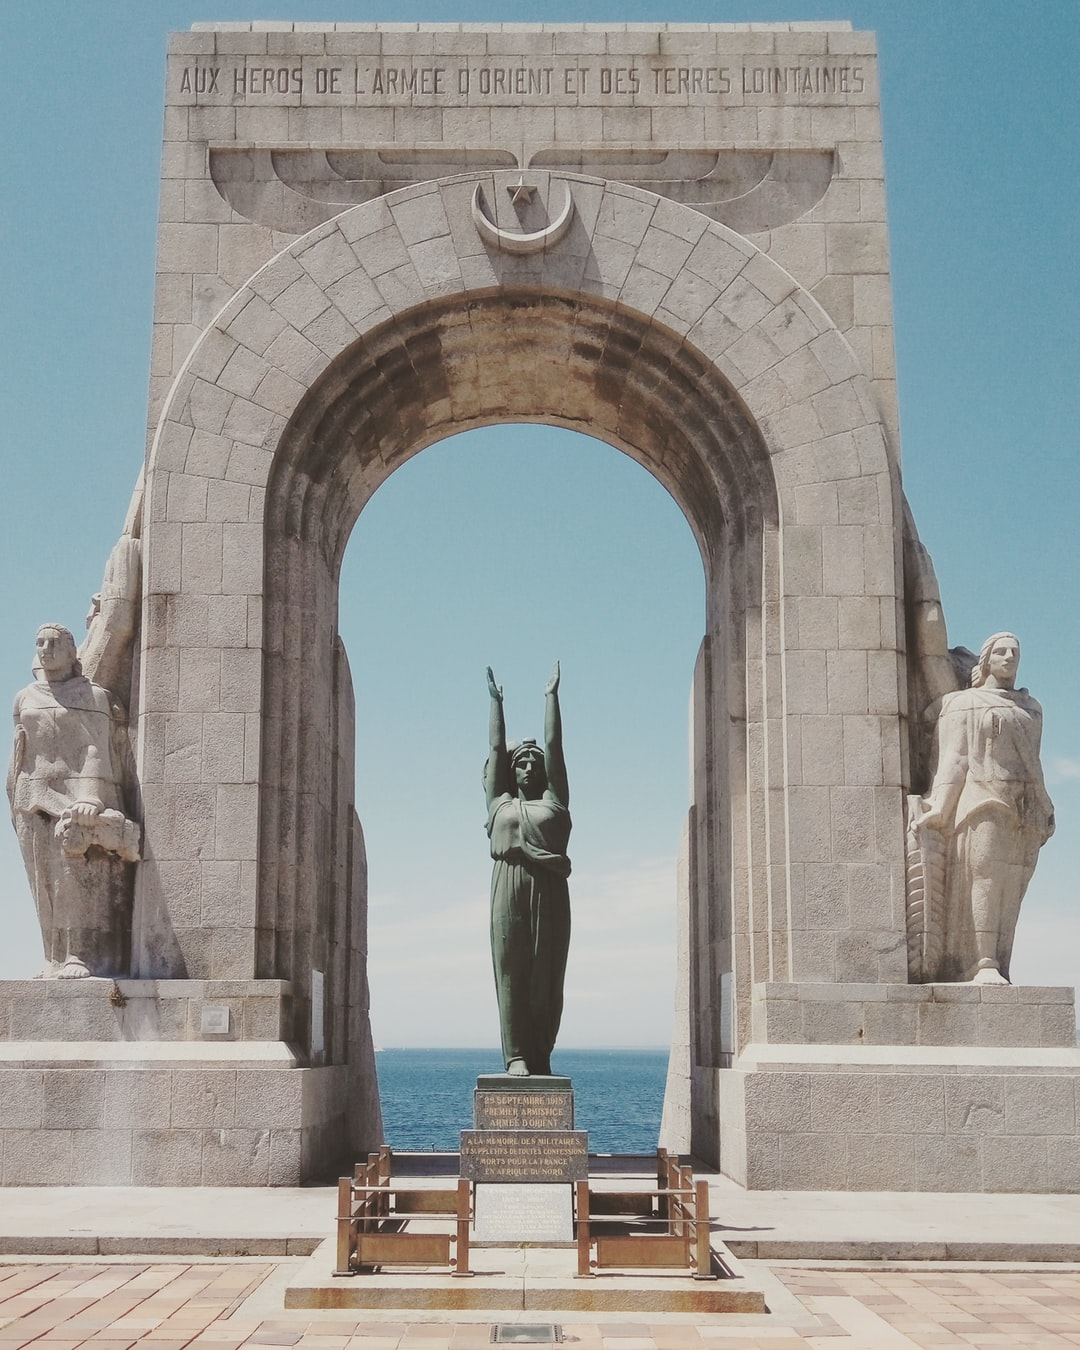 The Porte d'Orient, or The Oriental Door) - represents the thousands of French-African Colonial soldiers who left from the shores of Marseille to fight in the the Orient during World War I.   This marked an important and significant moment in my journey through and across Europe on my bike. I had just cycled the length of France, and subsequently collapsed in an exhausted heap infront of the arch after I took this photo.